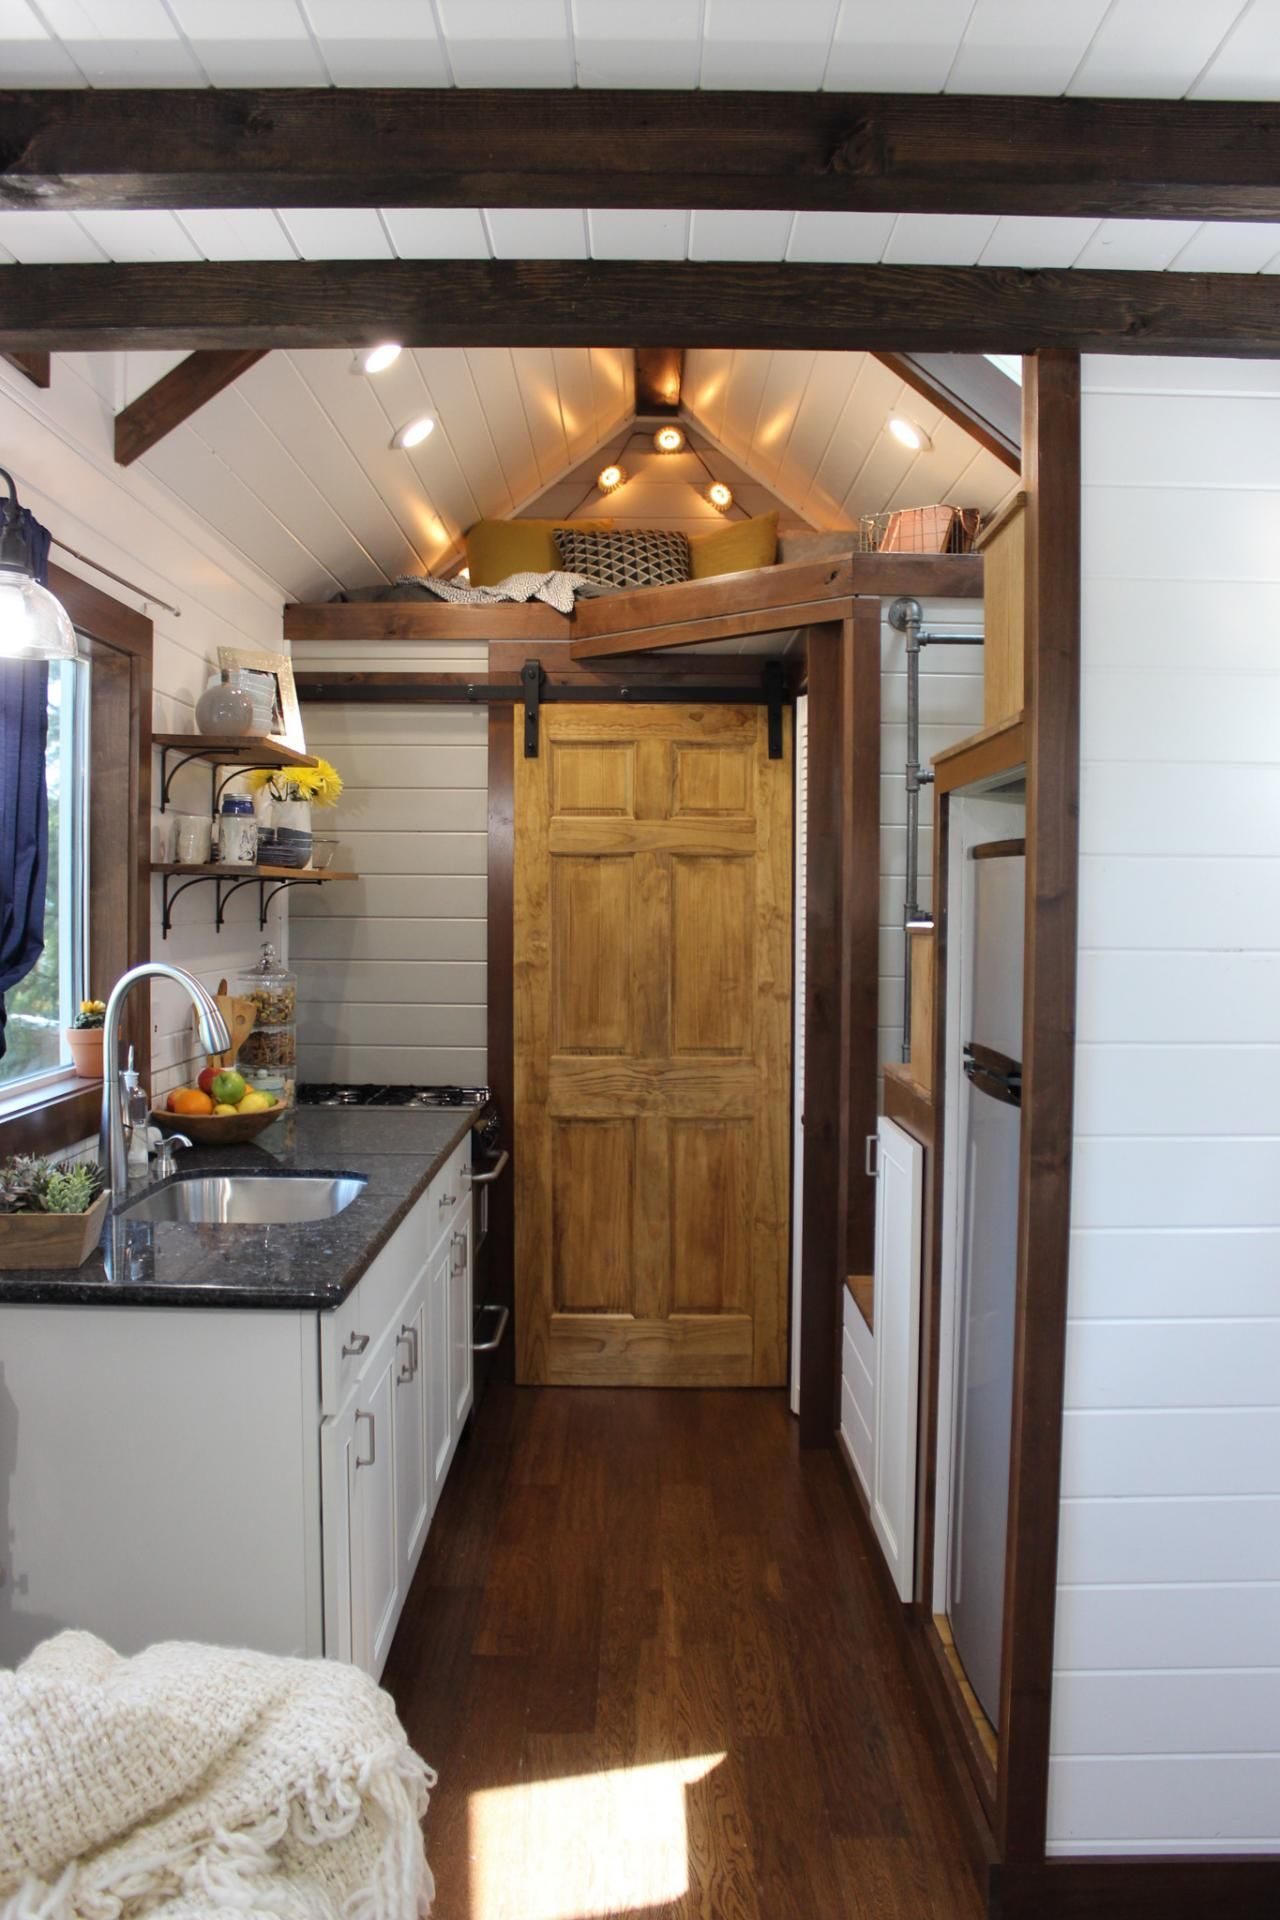 Tiny Luxury 9 Things You Gain When You Go Tiny Tiny Luxury Tiny House Swoon Tiny House Big Living